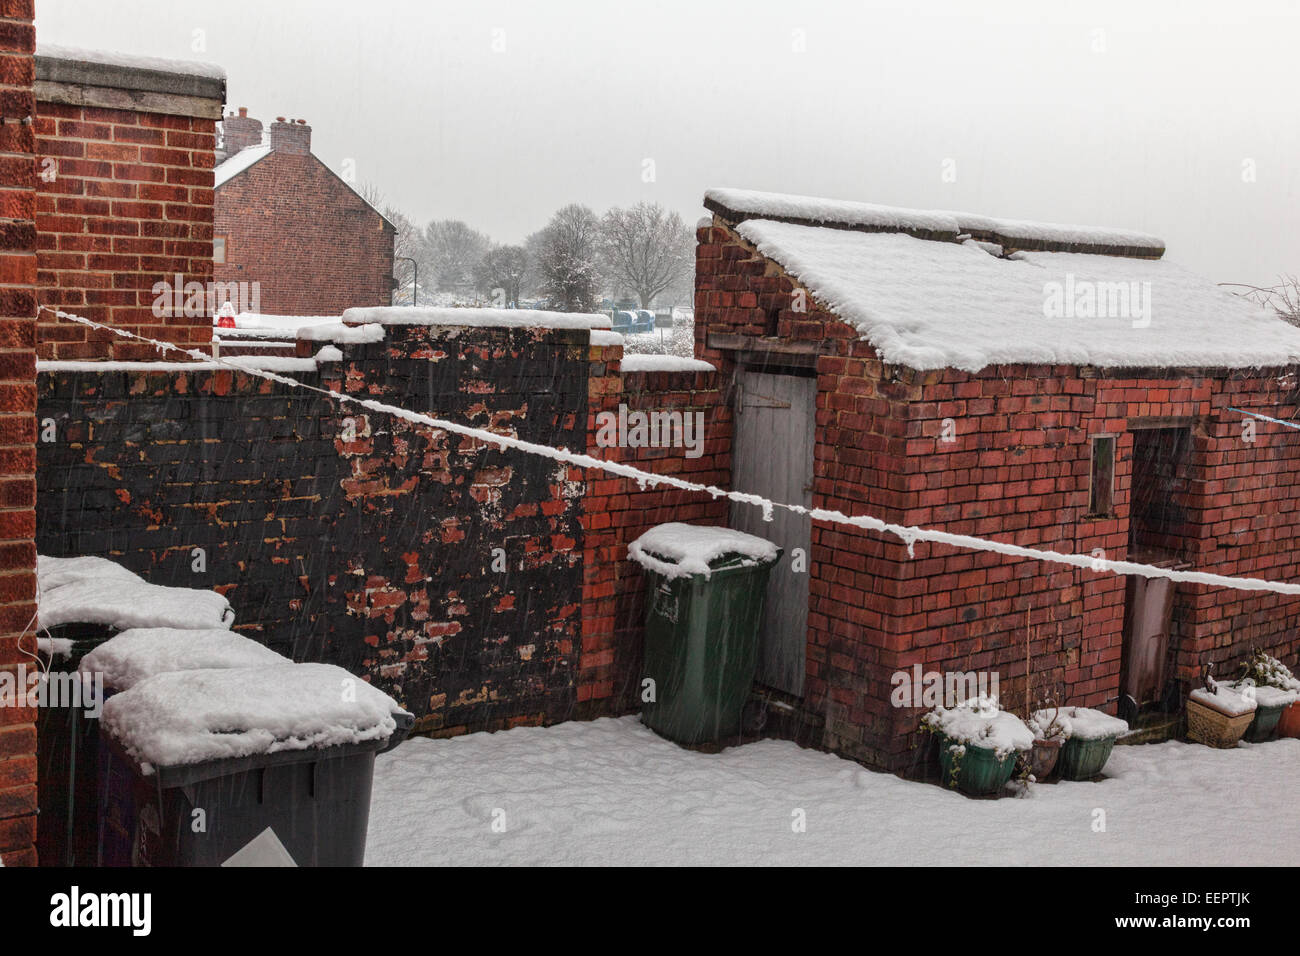 A view across a snowy back yard in Hough Lane, Wombwell,South Yorkshire. - Stock Image